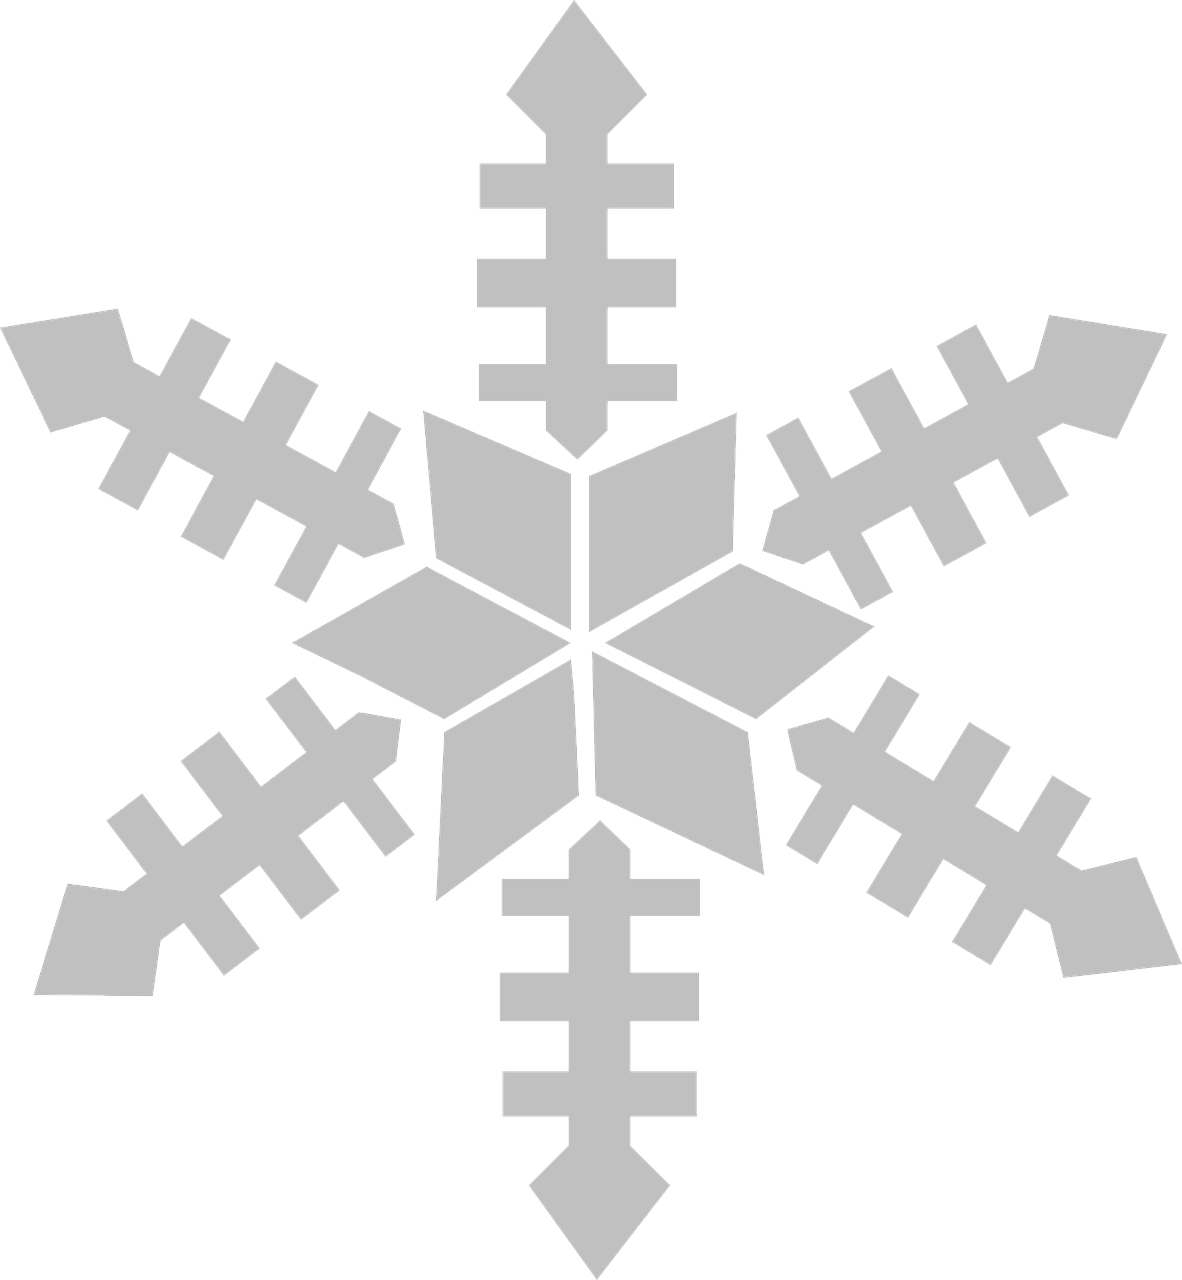 flake,ice,grey,frost,snow,weather,freeze,snowfall,seasonal,wintertime,snowing,free vector graphics,free pictures, free photos, free images, royalty free, free illustrations, public domain